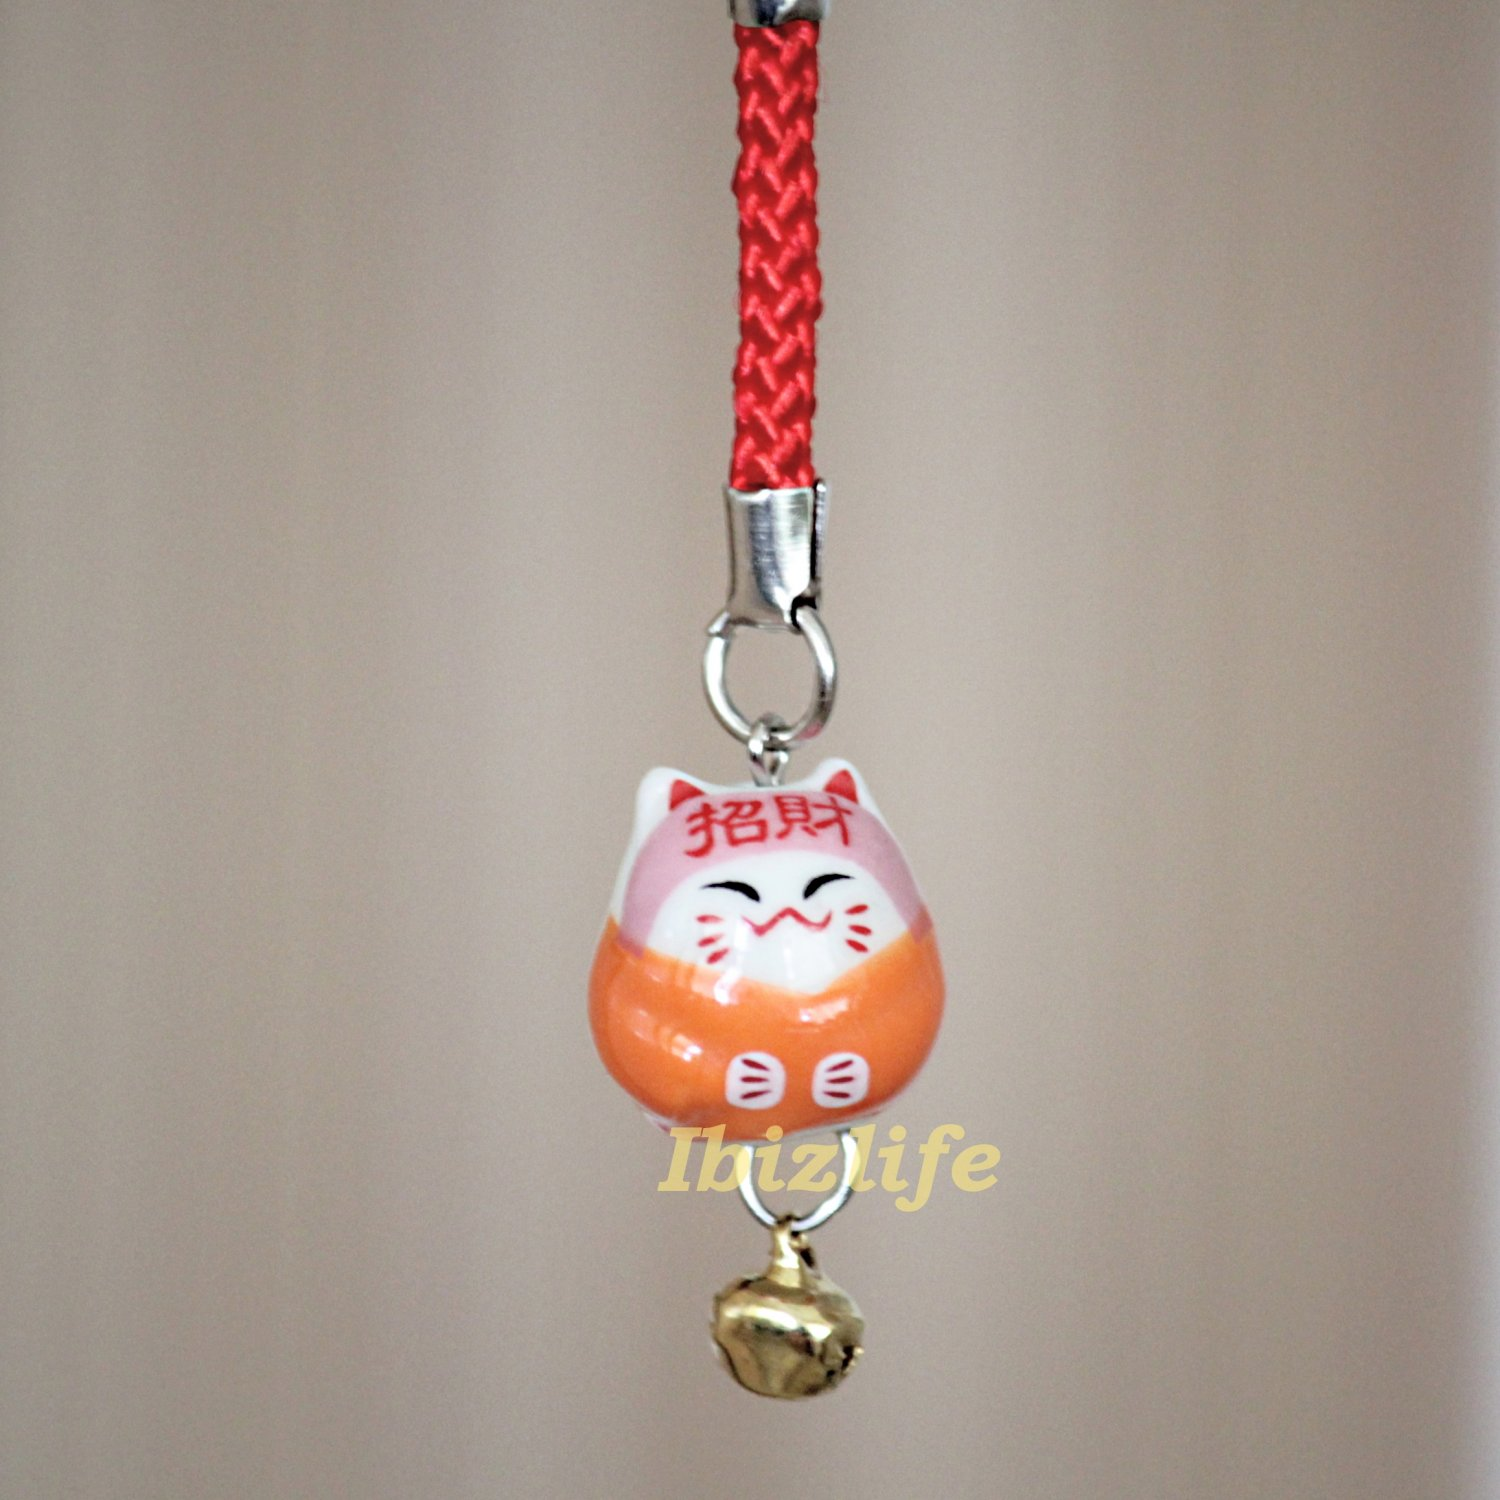 Blessing Lucky BELL CHARM- (Maneki Neko) with Chinese Blessing words WEALTH (bbc11)